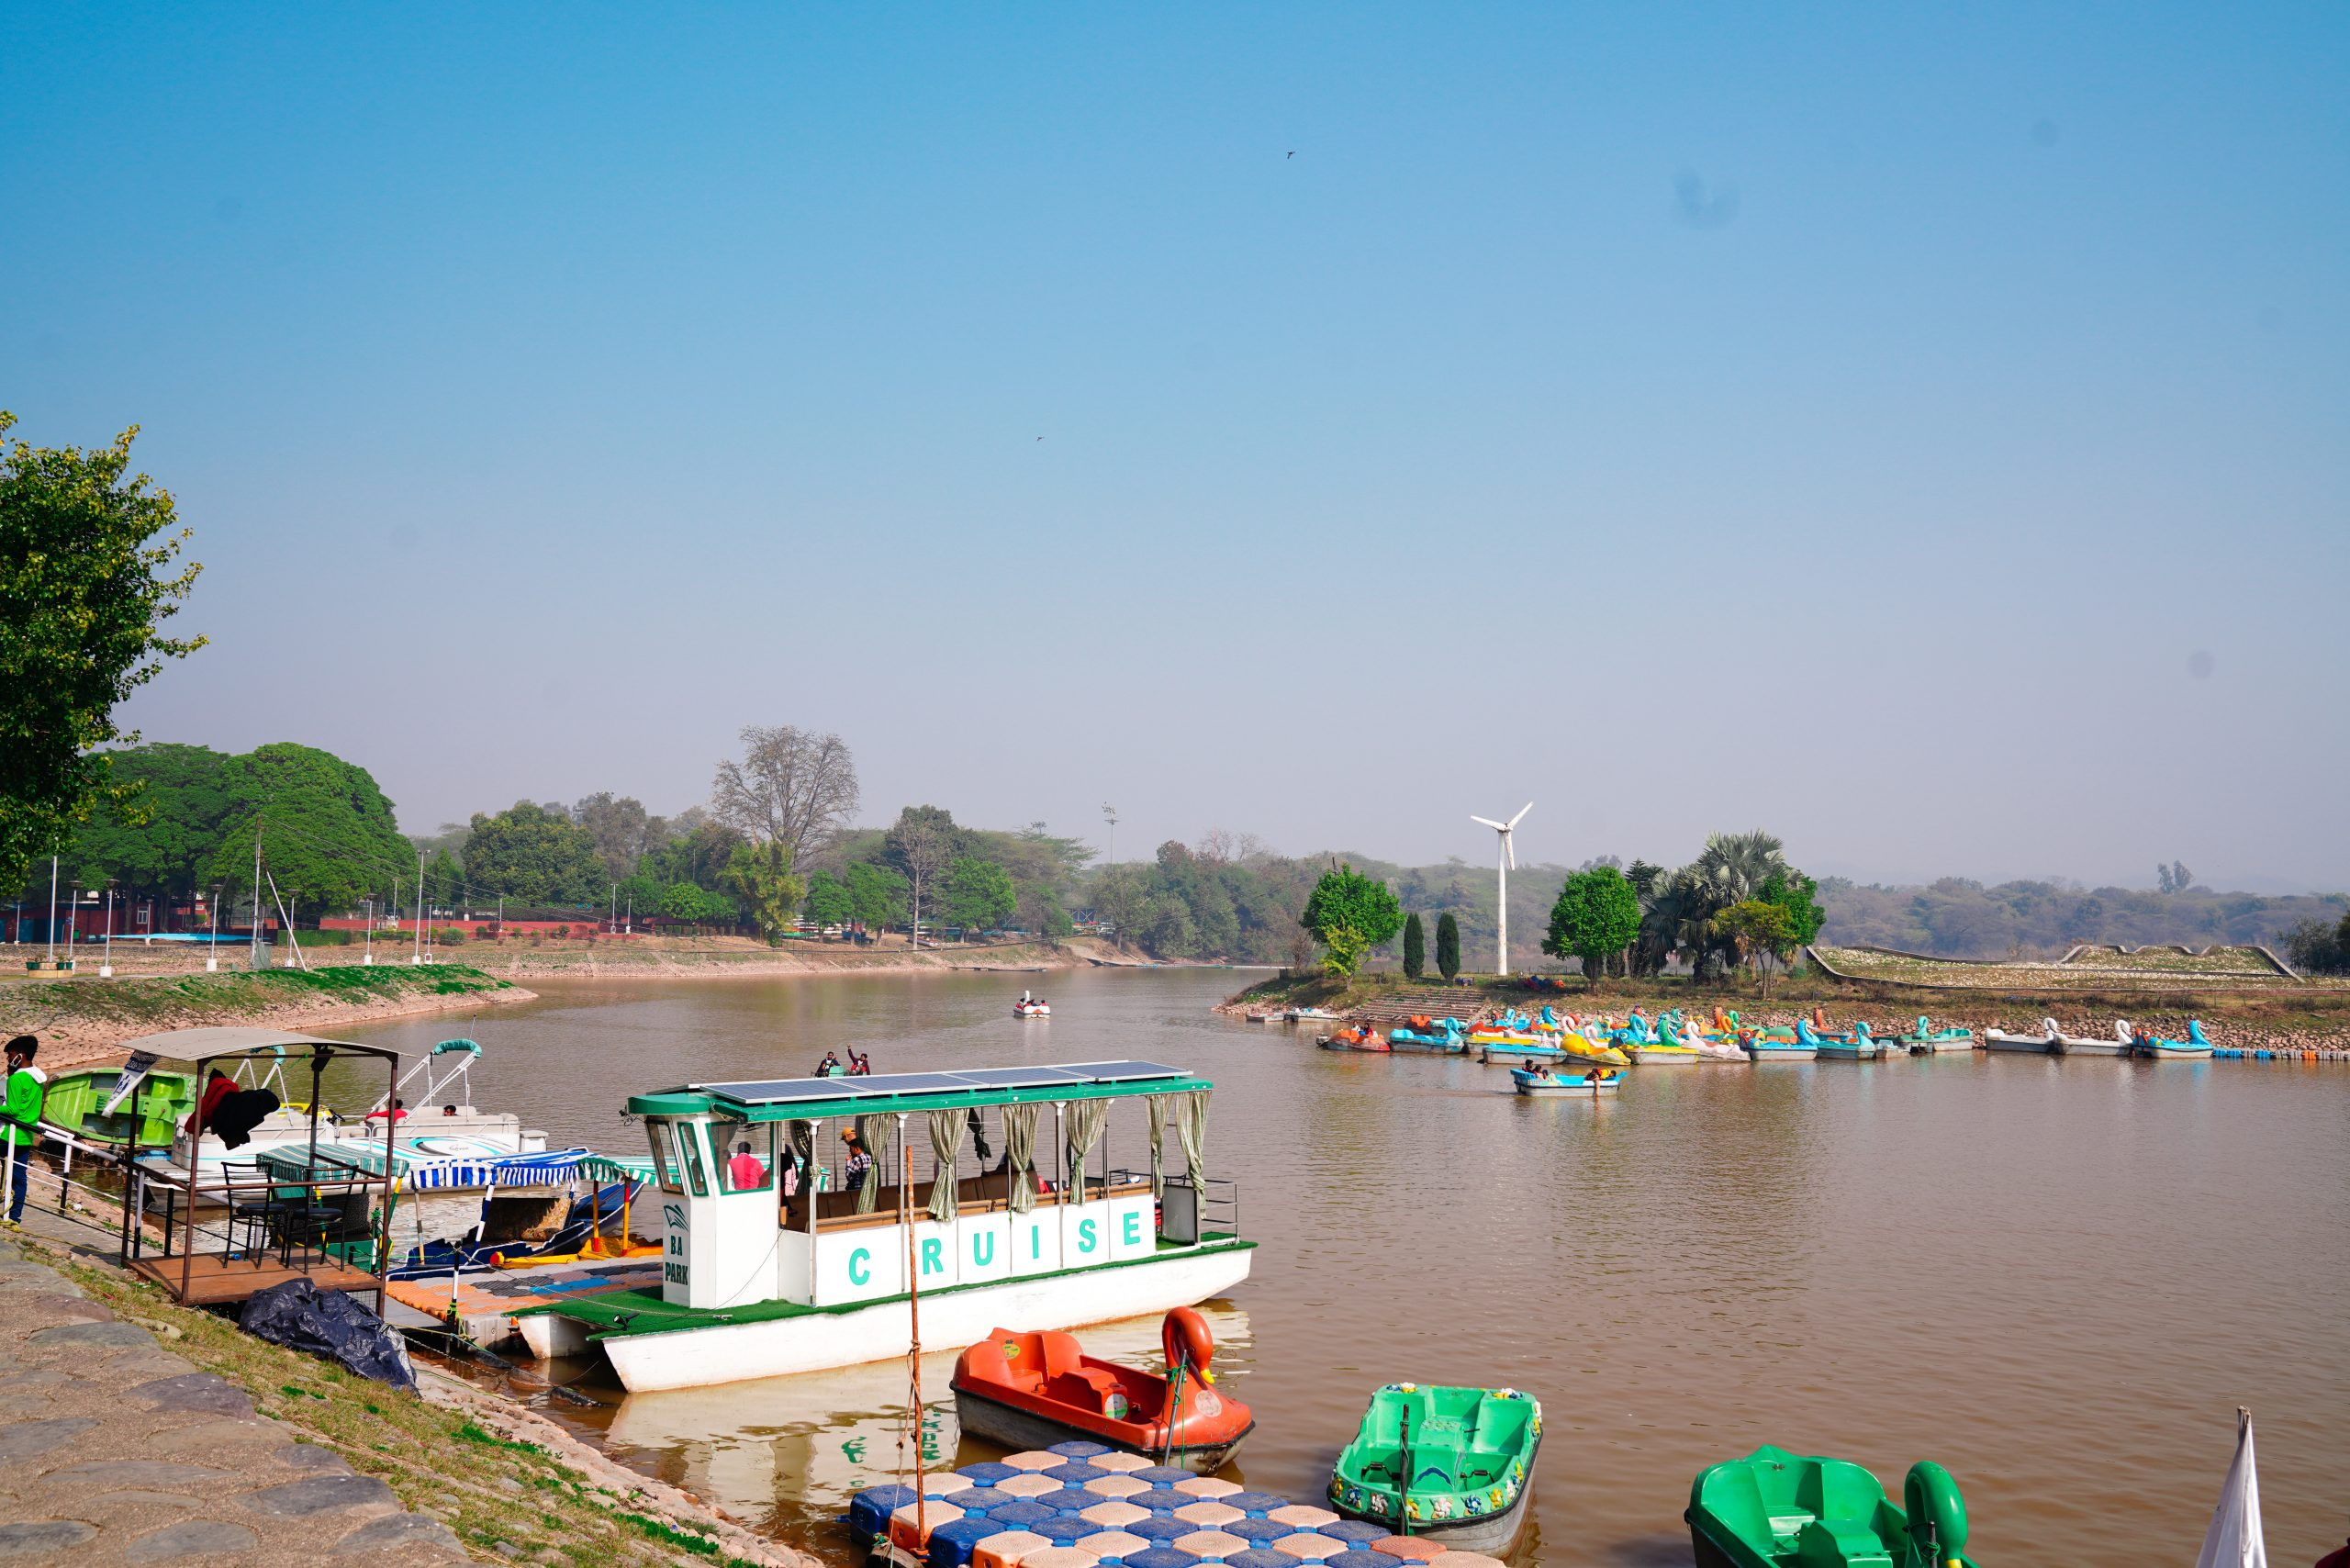 Boats at Sukhna lake in Chandigarh